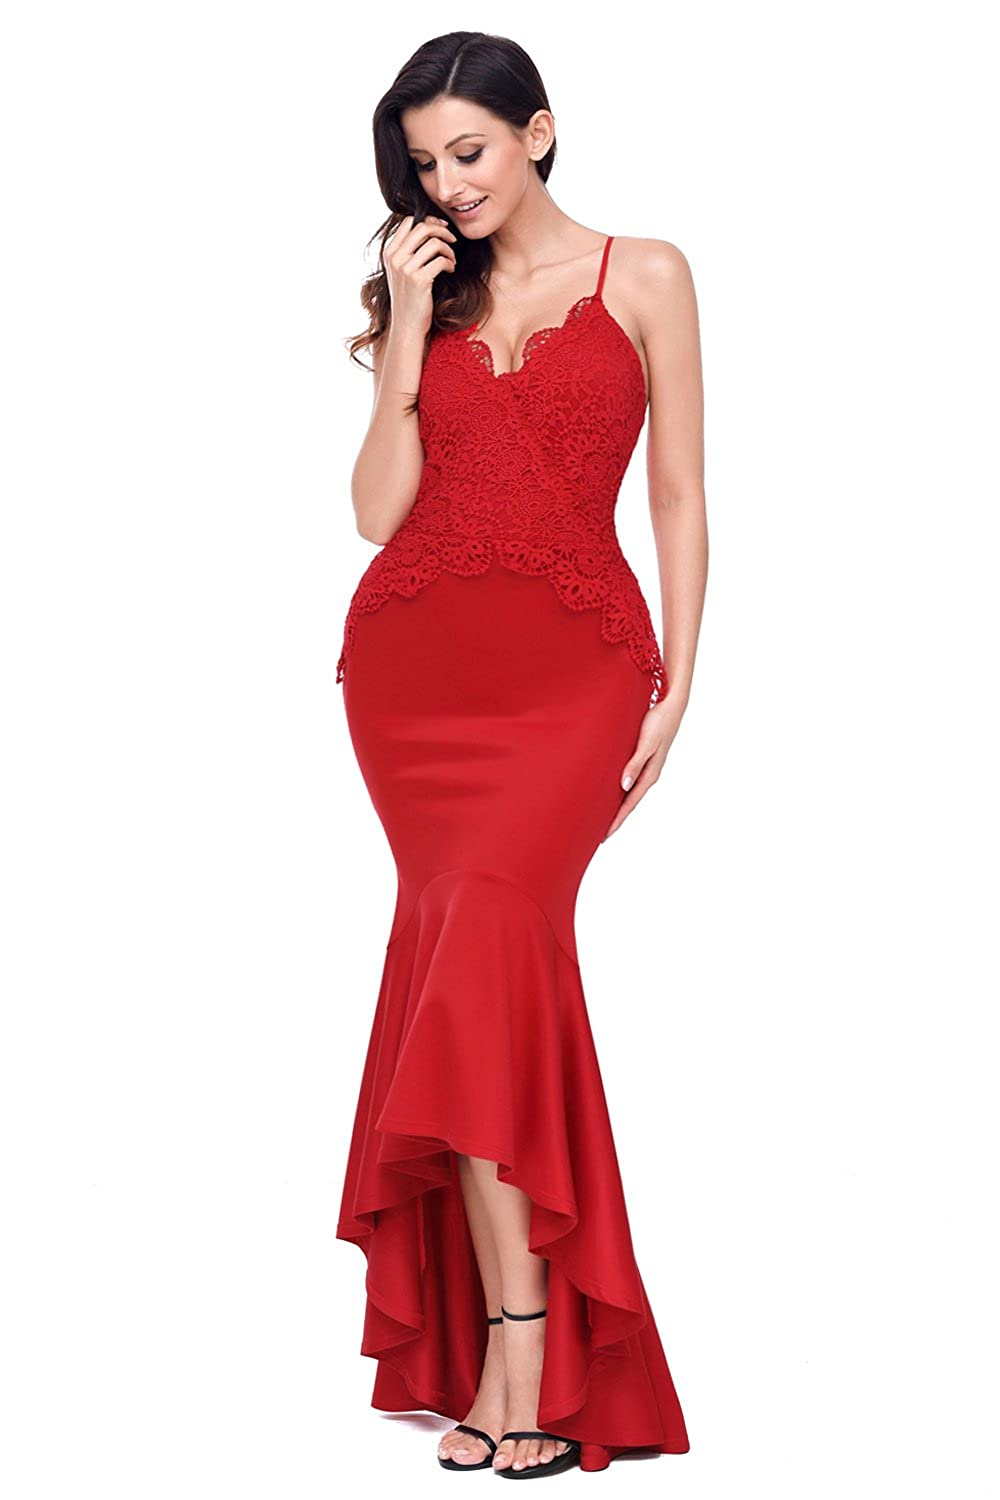 5eecc7fa5bc81 Amazon.com  Summer Women Crisscross Spaghetti Straps Hi-Low Mermaid Dress  Maxi Long Dress Sexy Backless Party Gowns Red Vestidos De Fiesta (S)   Clothing